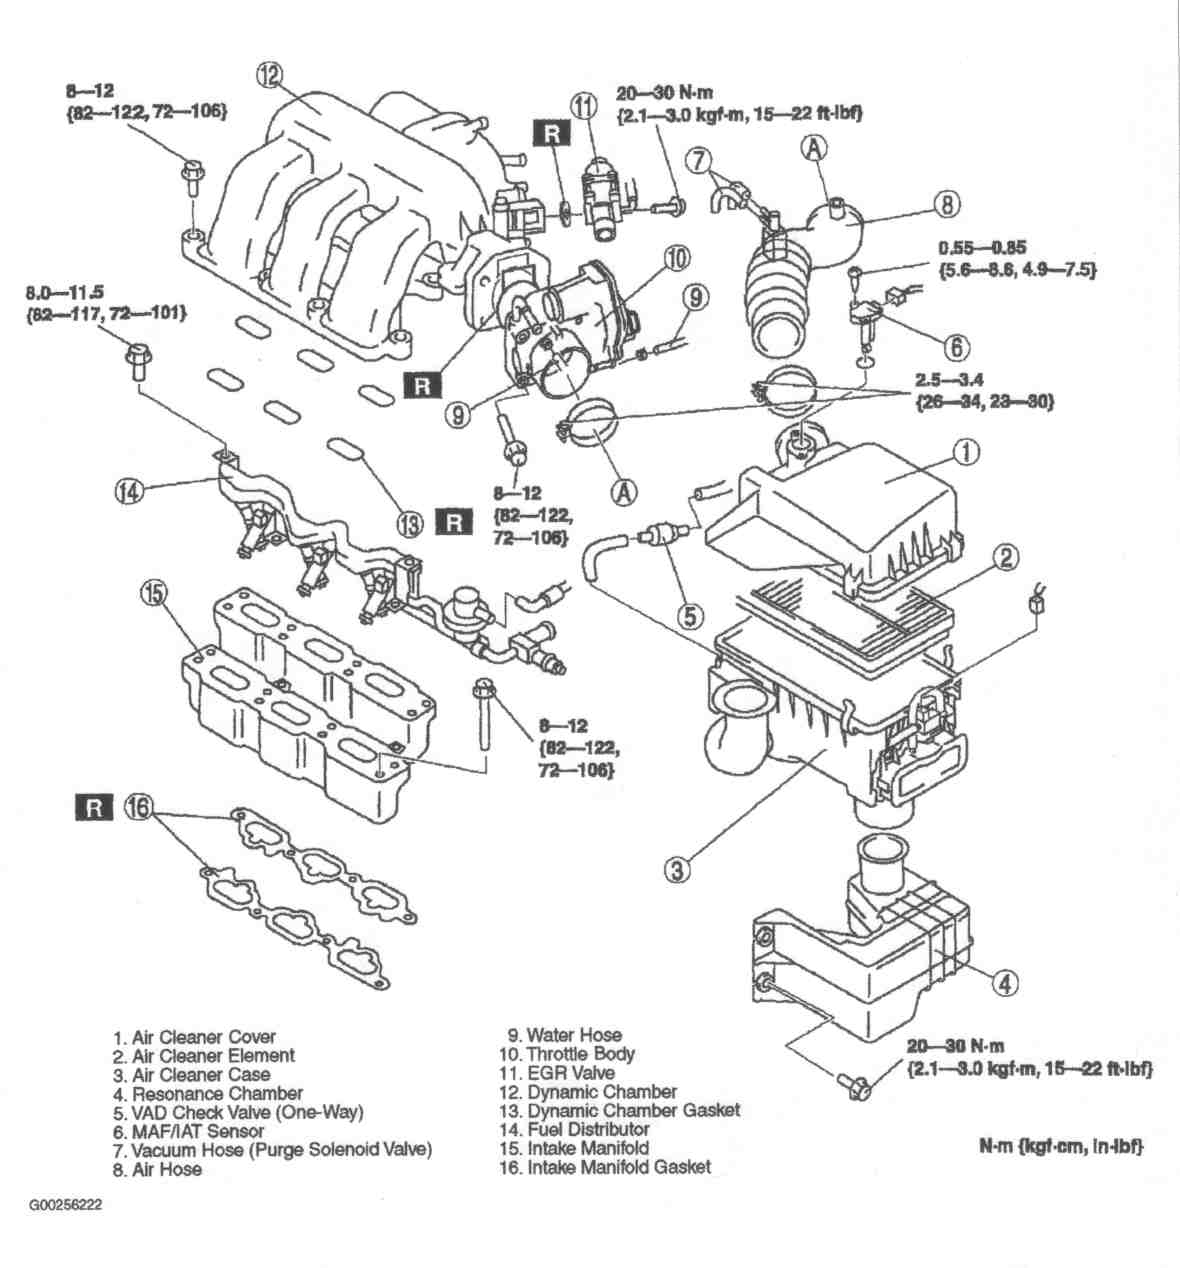 2006 Mazda 6 Engine Diagram What Needs To Be Removed Gain Access Rear Bank Of Spark Plugs Graphic